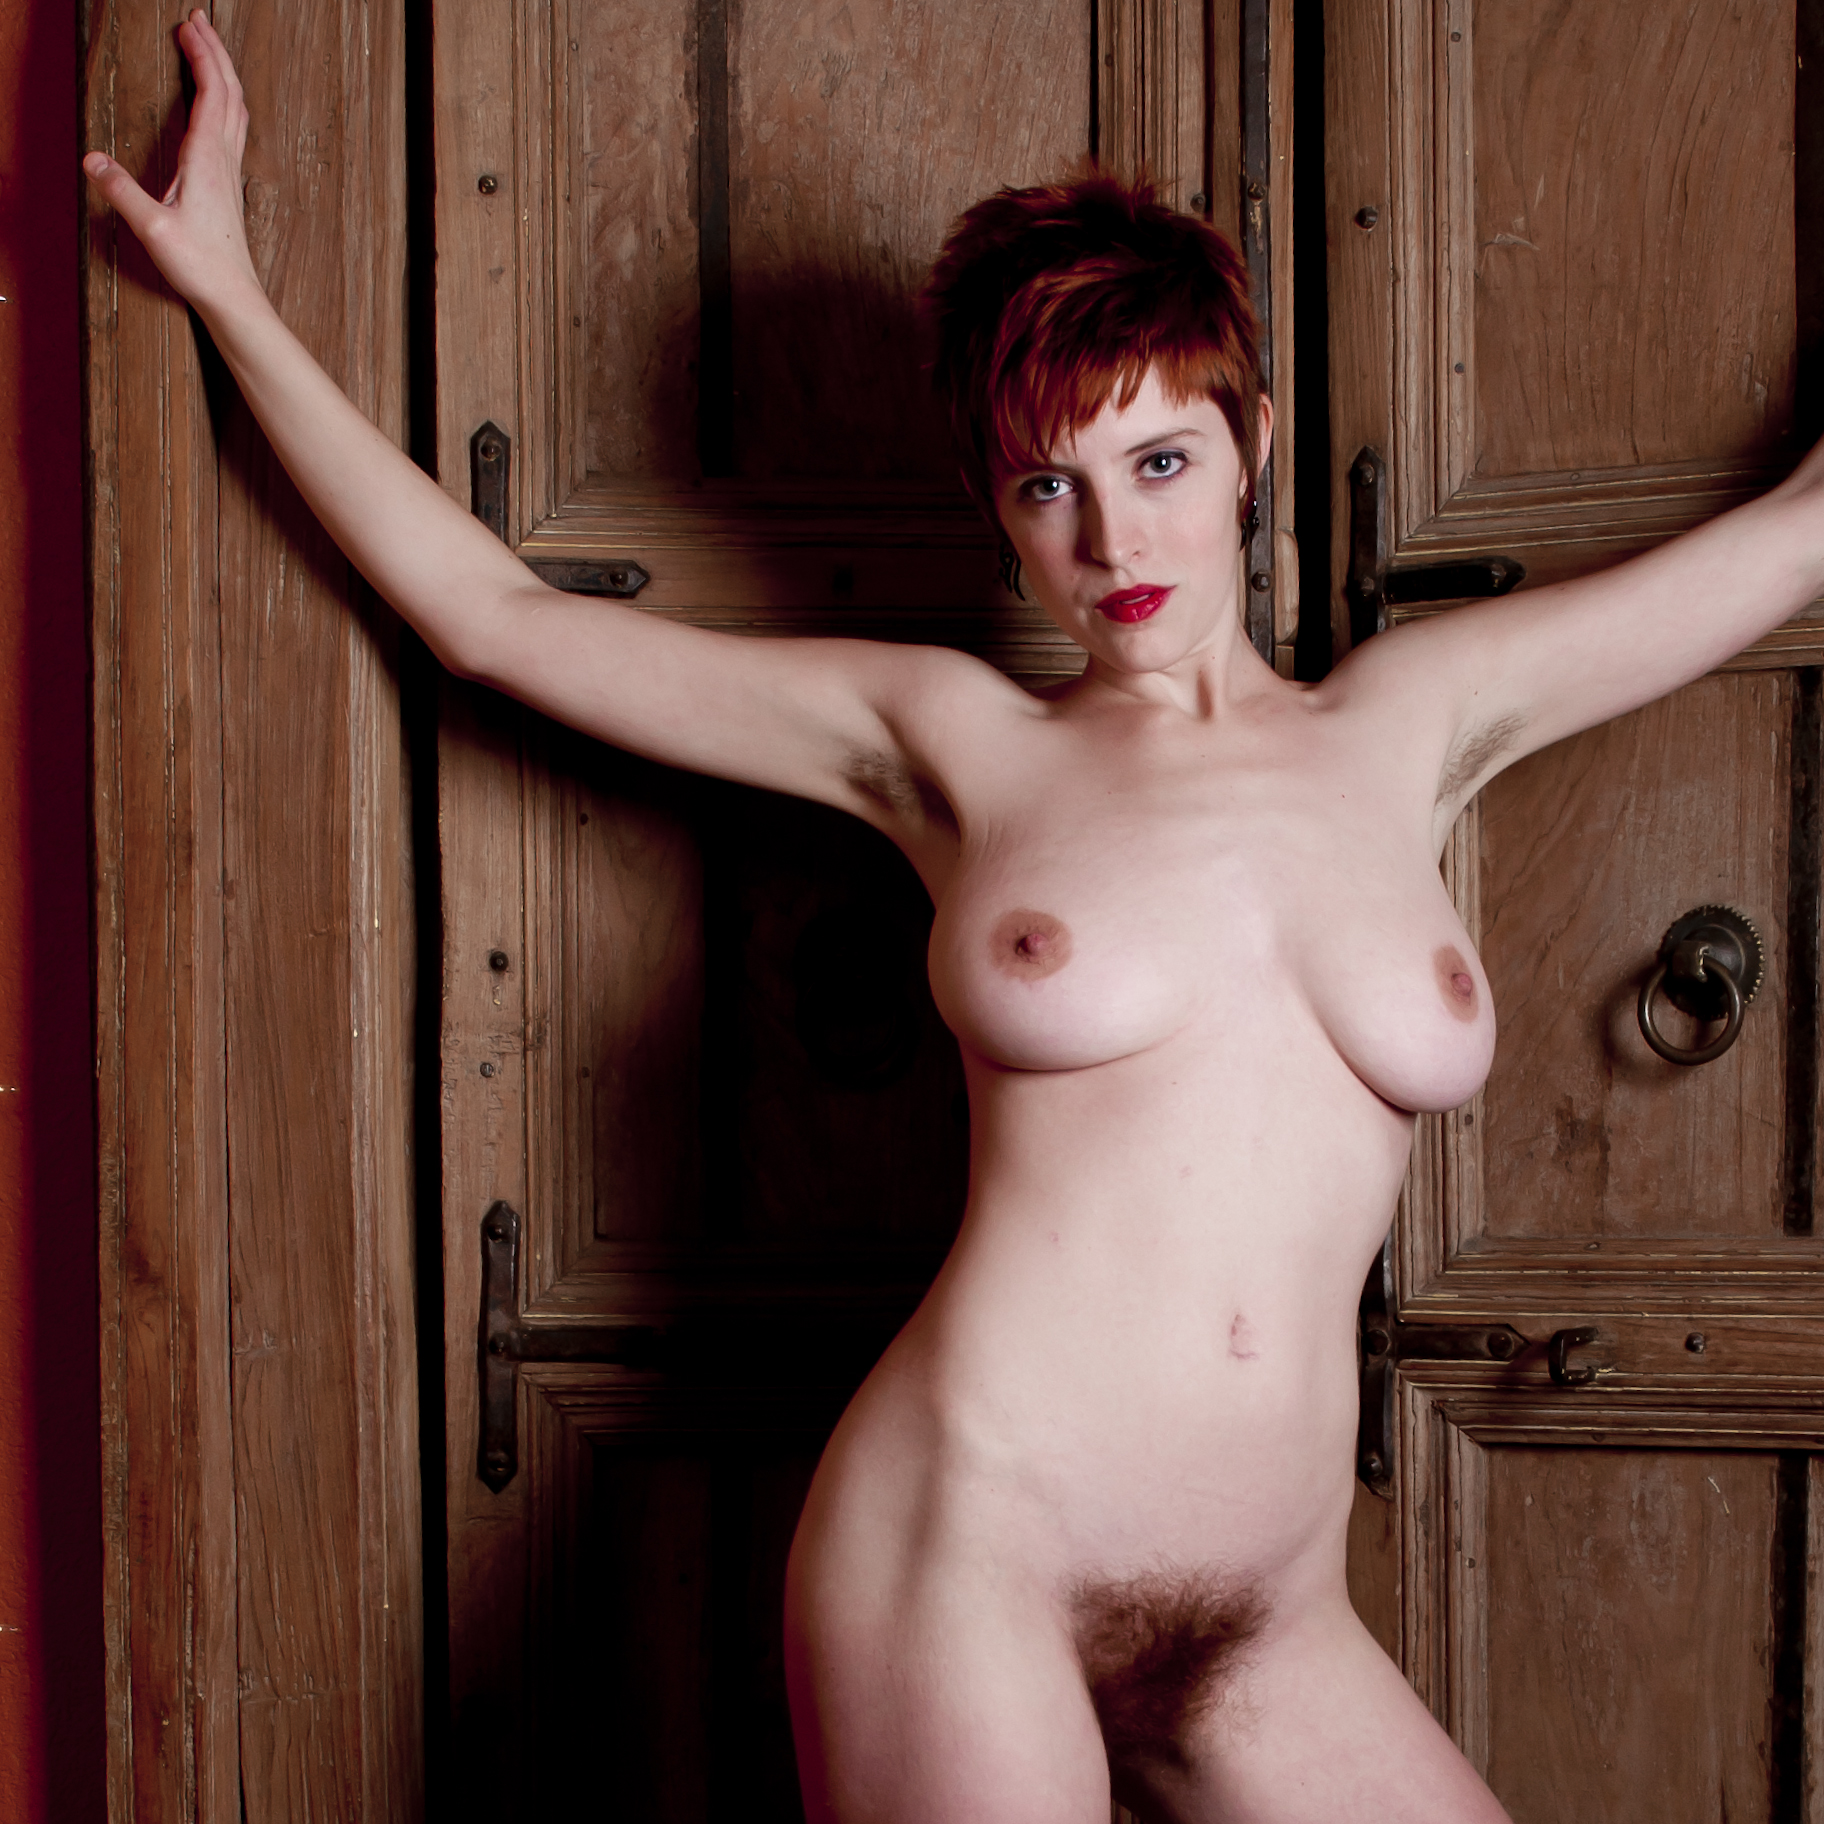 Naked Red Headed Women 96